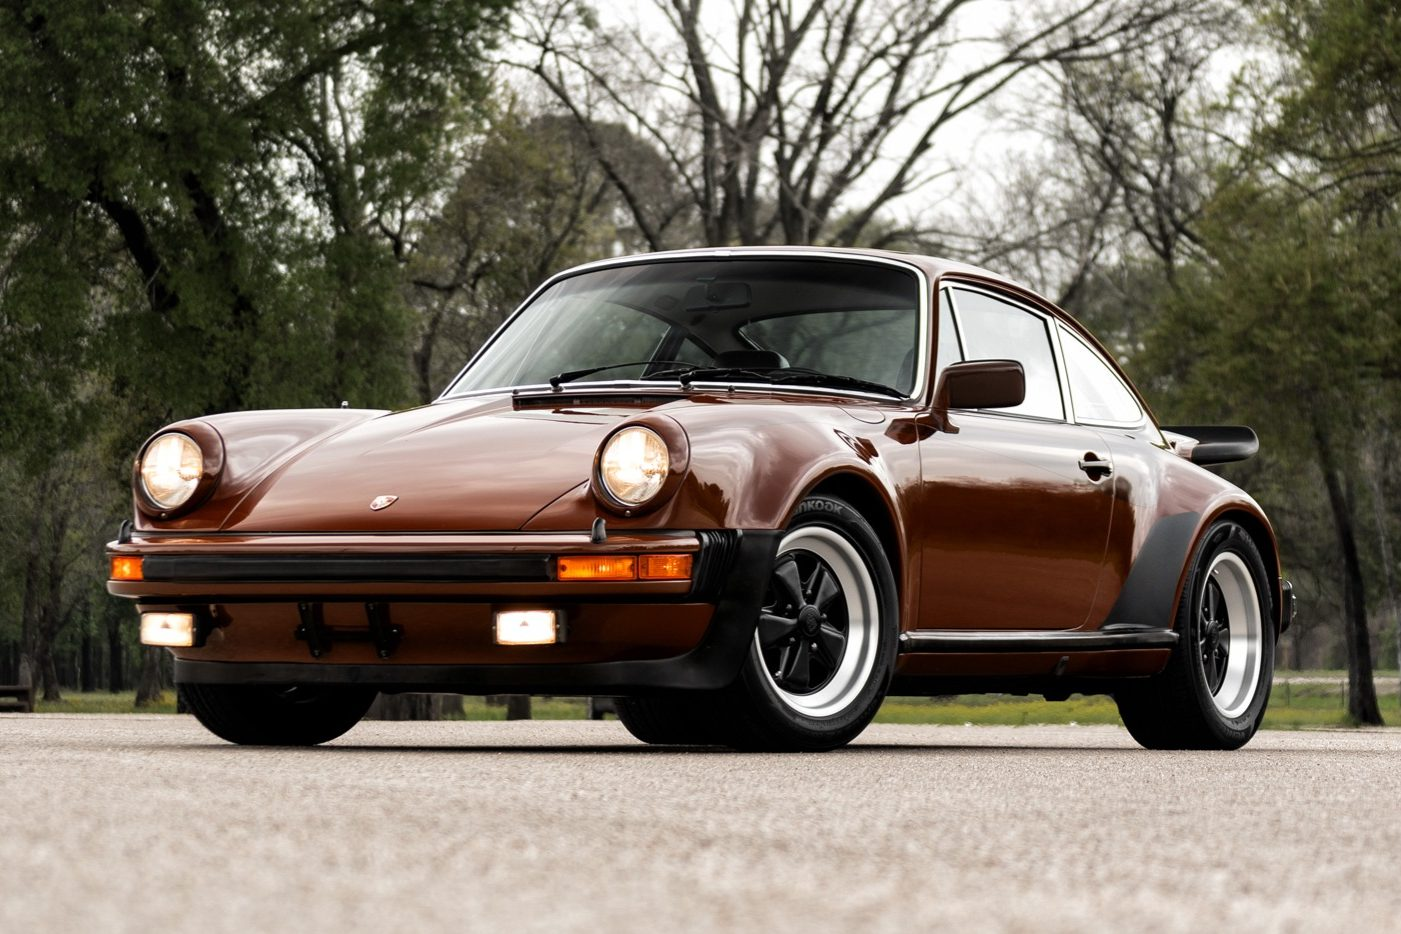 hight resolution of 1977 porsche 930 turbo carrera for sale on bat auctions sold for 96 500 on june 3 2019 lot 19 433 bring a trailer